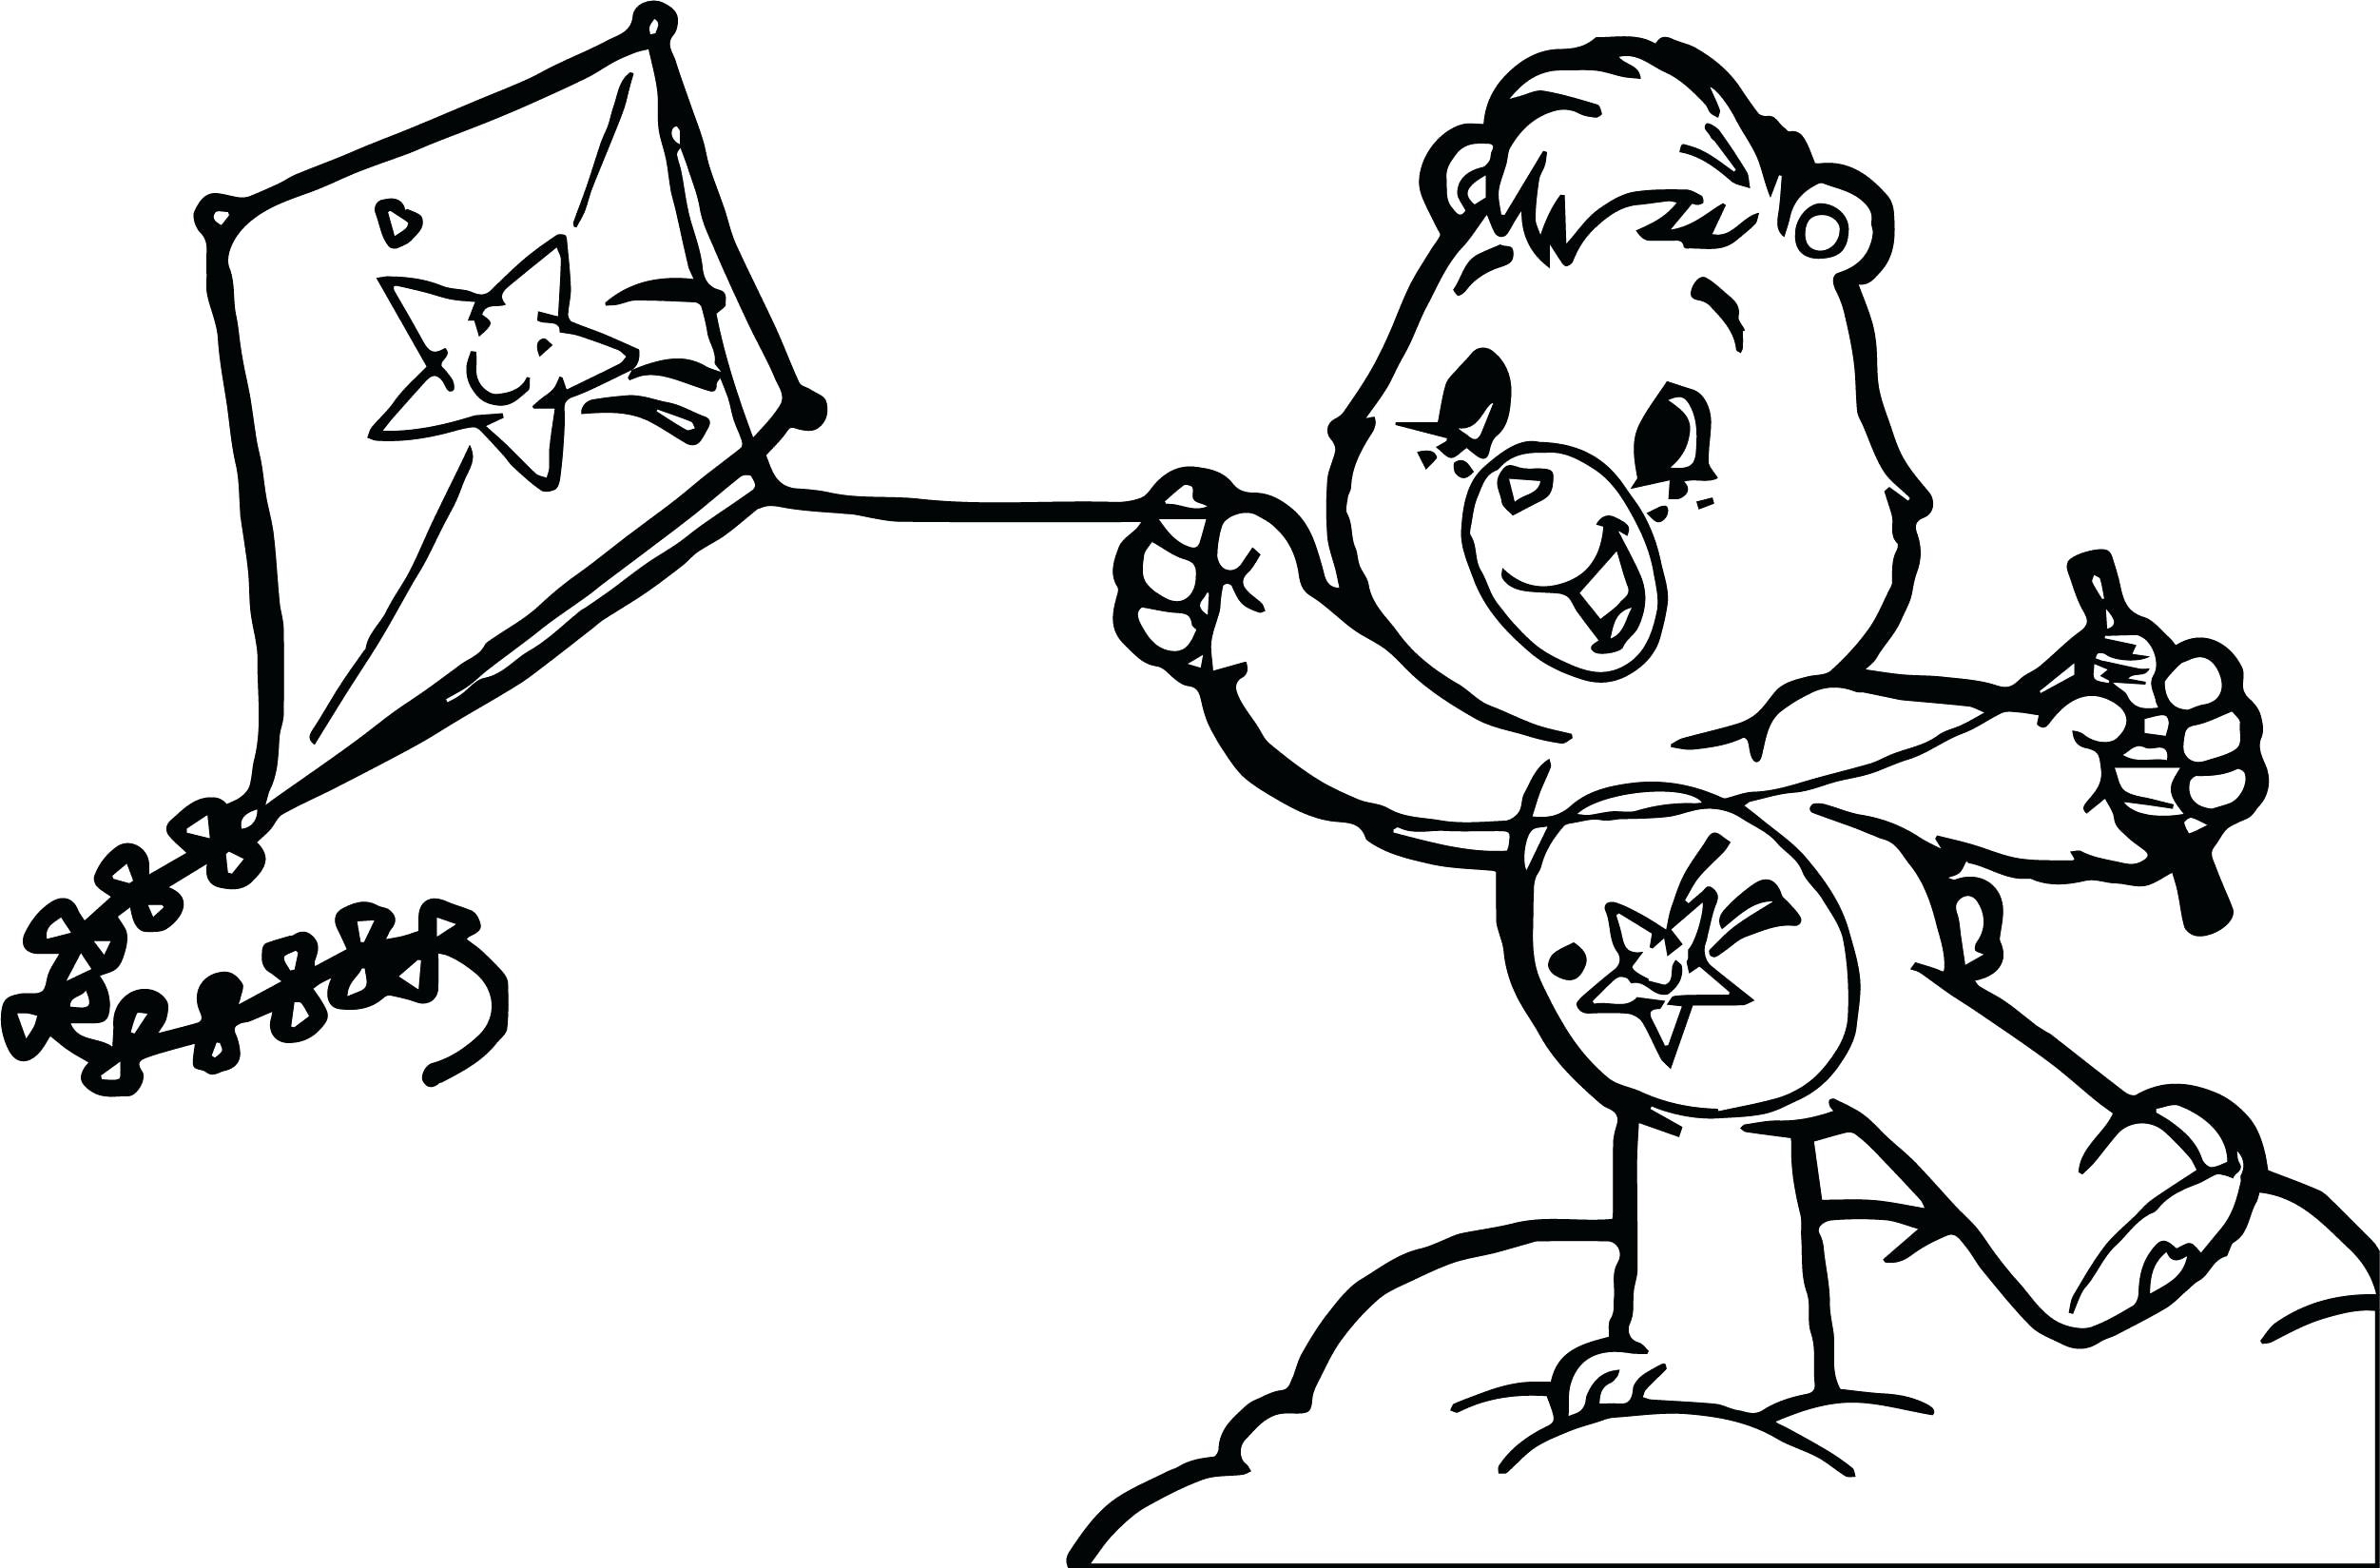 Kite Drawing At Free For Personal Use Chinese Template How To Make A Diagram 2503x1649 Coloring Cartoon Outline Colouring